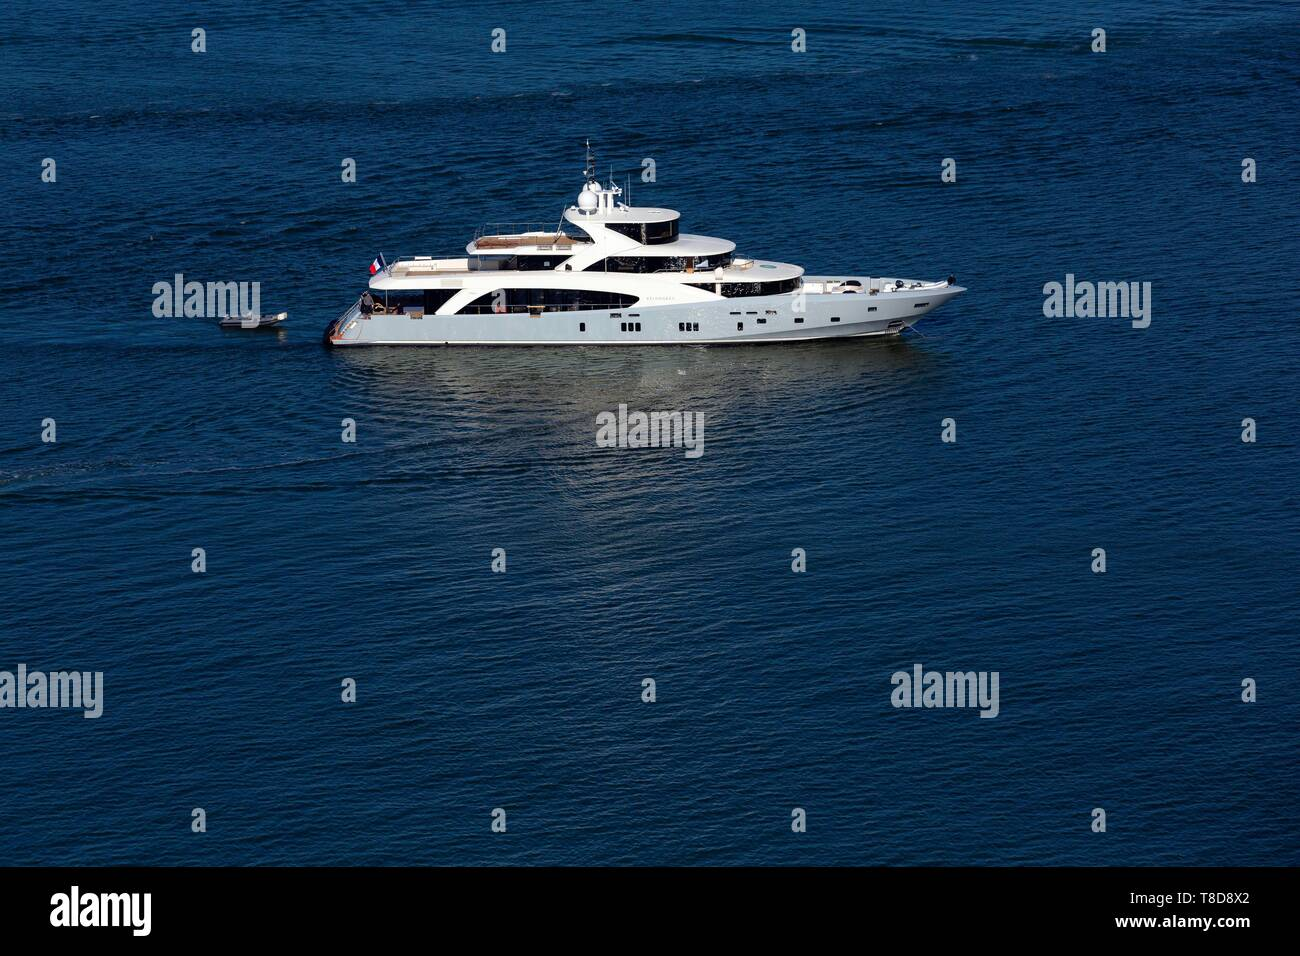 France, Gironde, Bassin d'Arcachon, yacht built by the shipyard Couach de Gujan Mestras (aerial view) - Stock Image